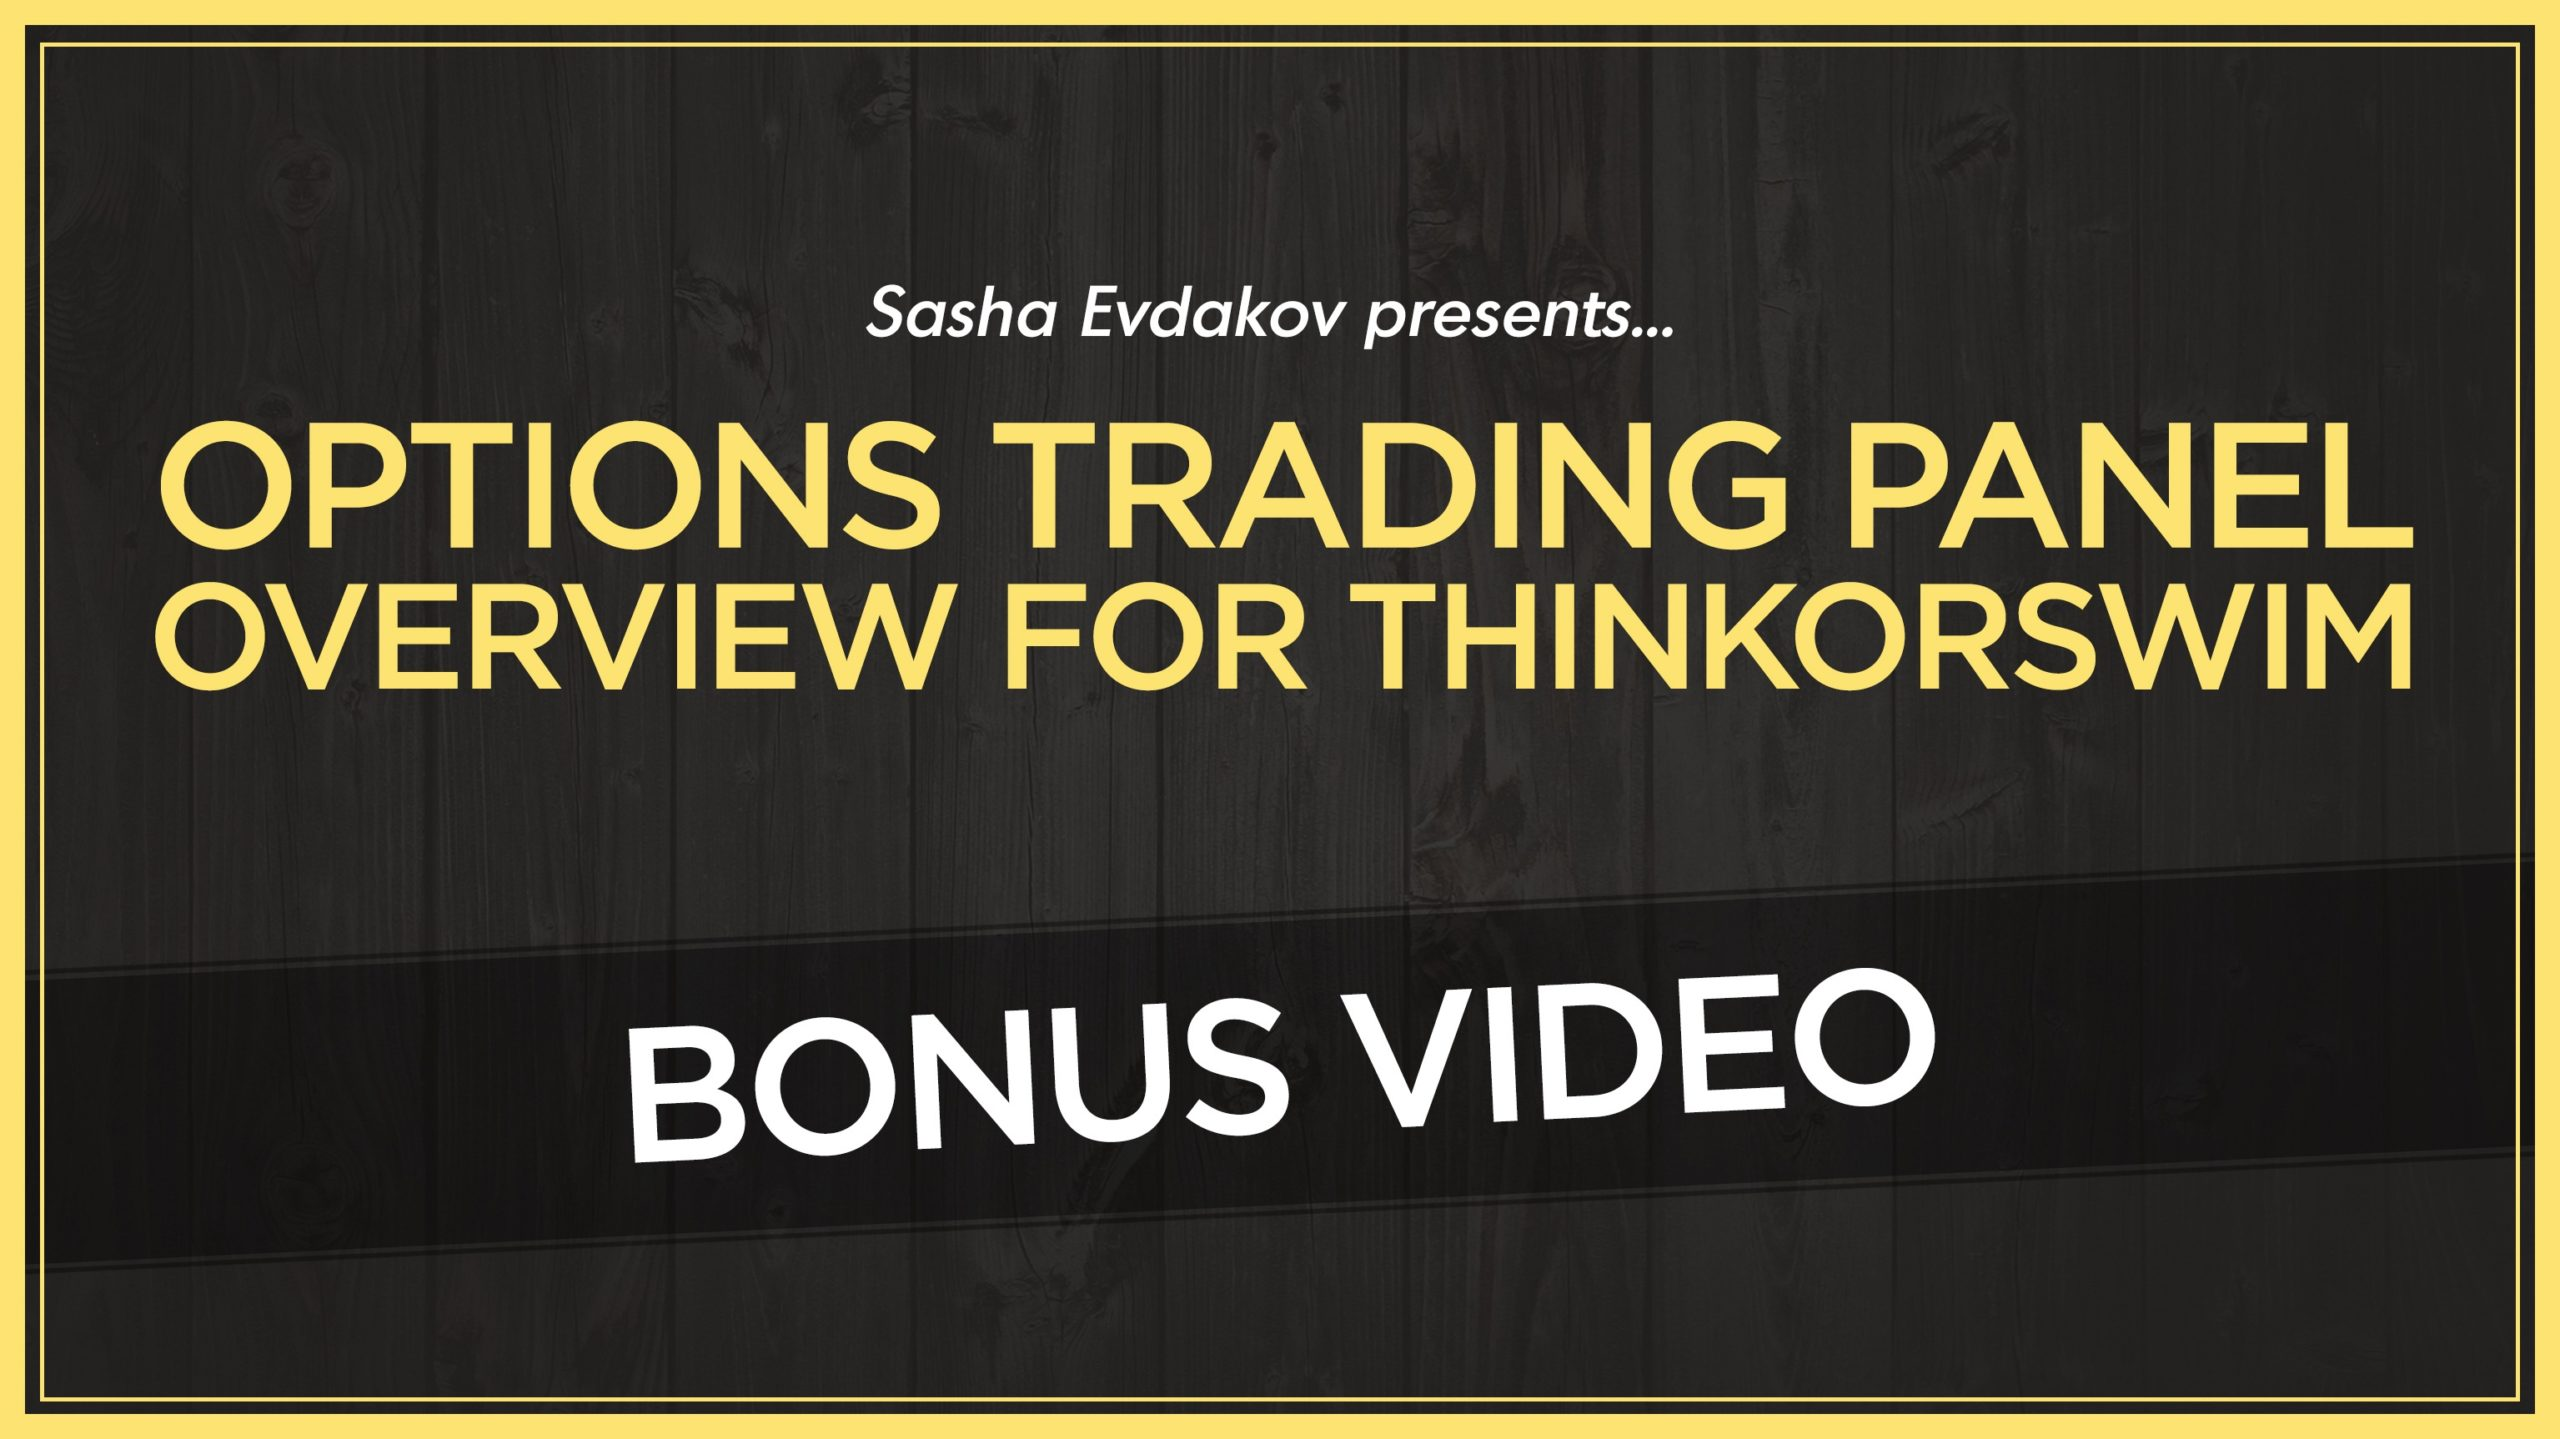 Bonus Video Options Trading Panel Overview for ThinkorSwim Thumbnail